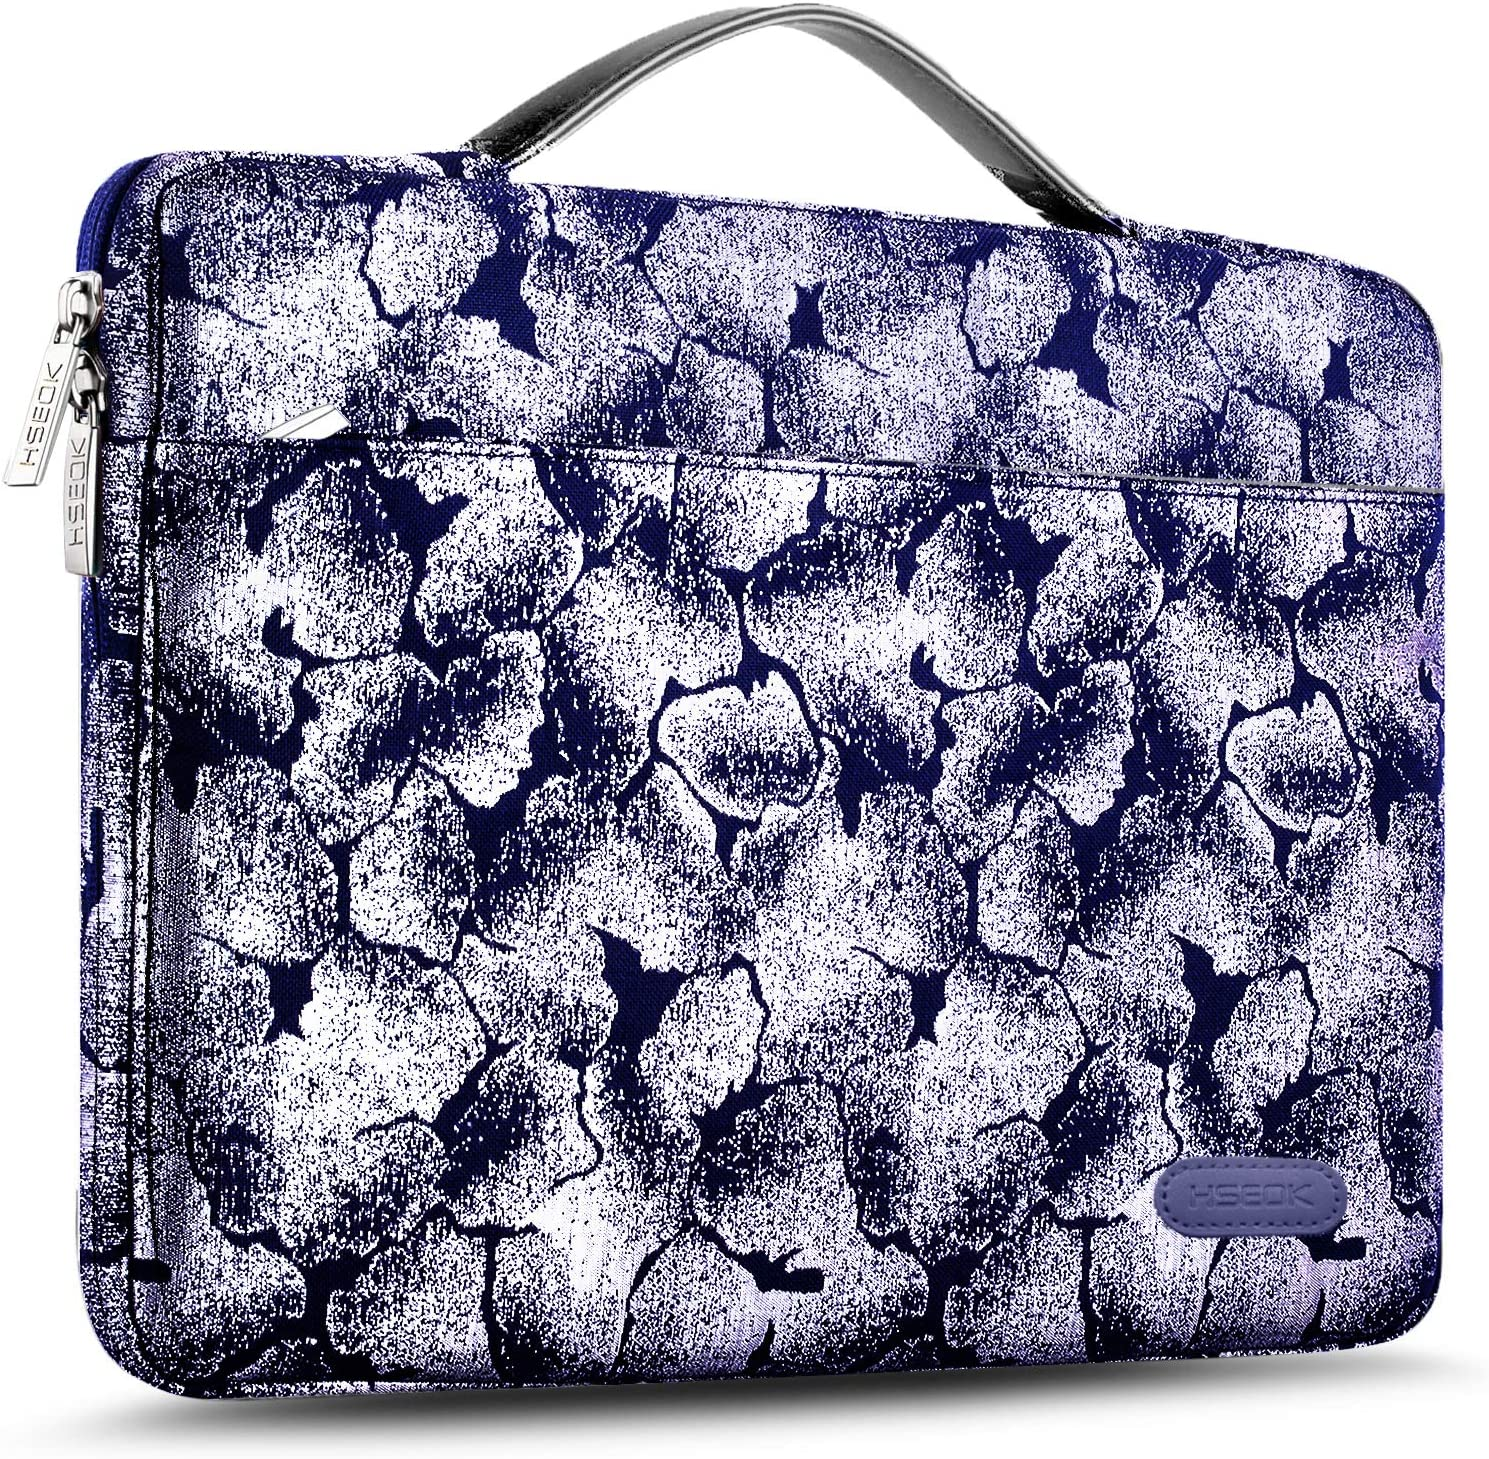 Hseok Laptop Sleeve 15 15.6 16 Inch Case Briefcase, Compatible MacBook Pro 16 15.4 inch, Surface Book 2/1 15 inch Spill-Resistant Handbag for Most Popular 15-16 inch Notebooks, Silver Flower BU